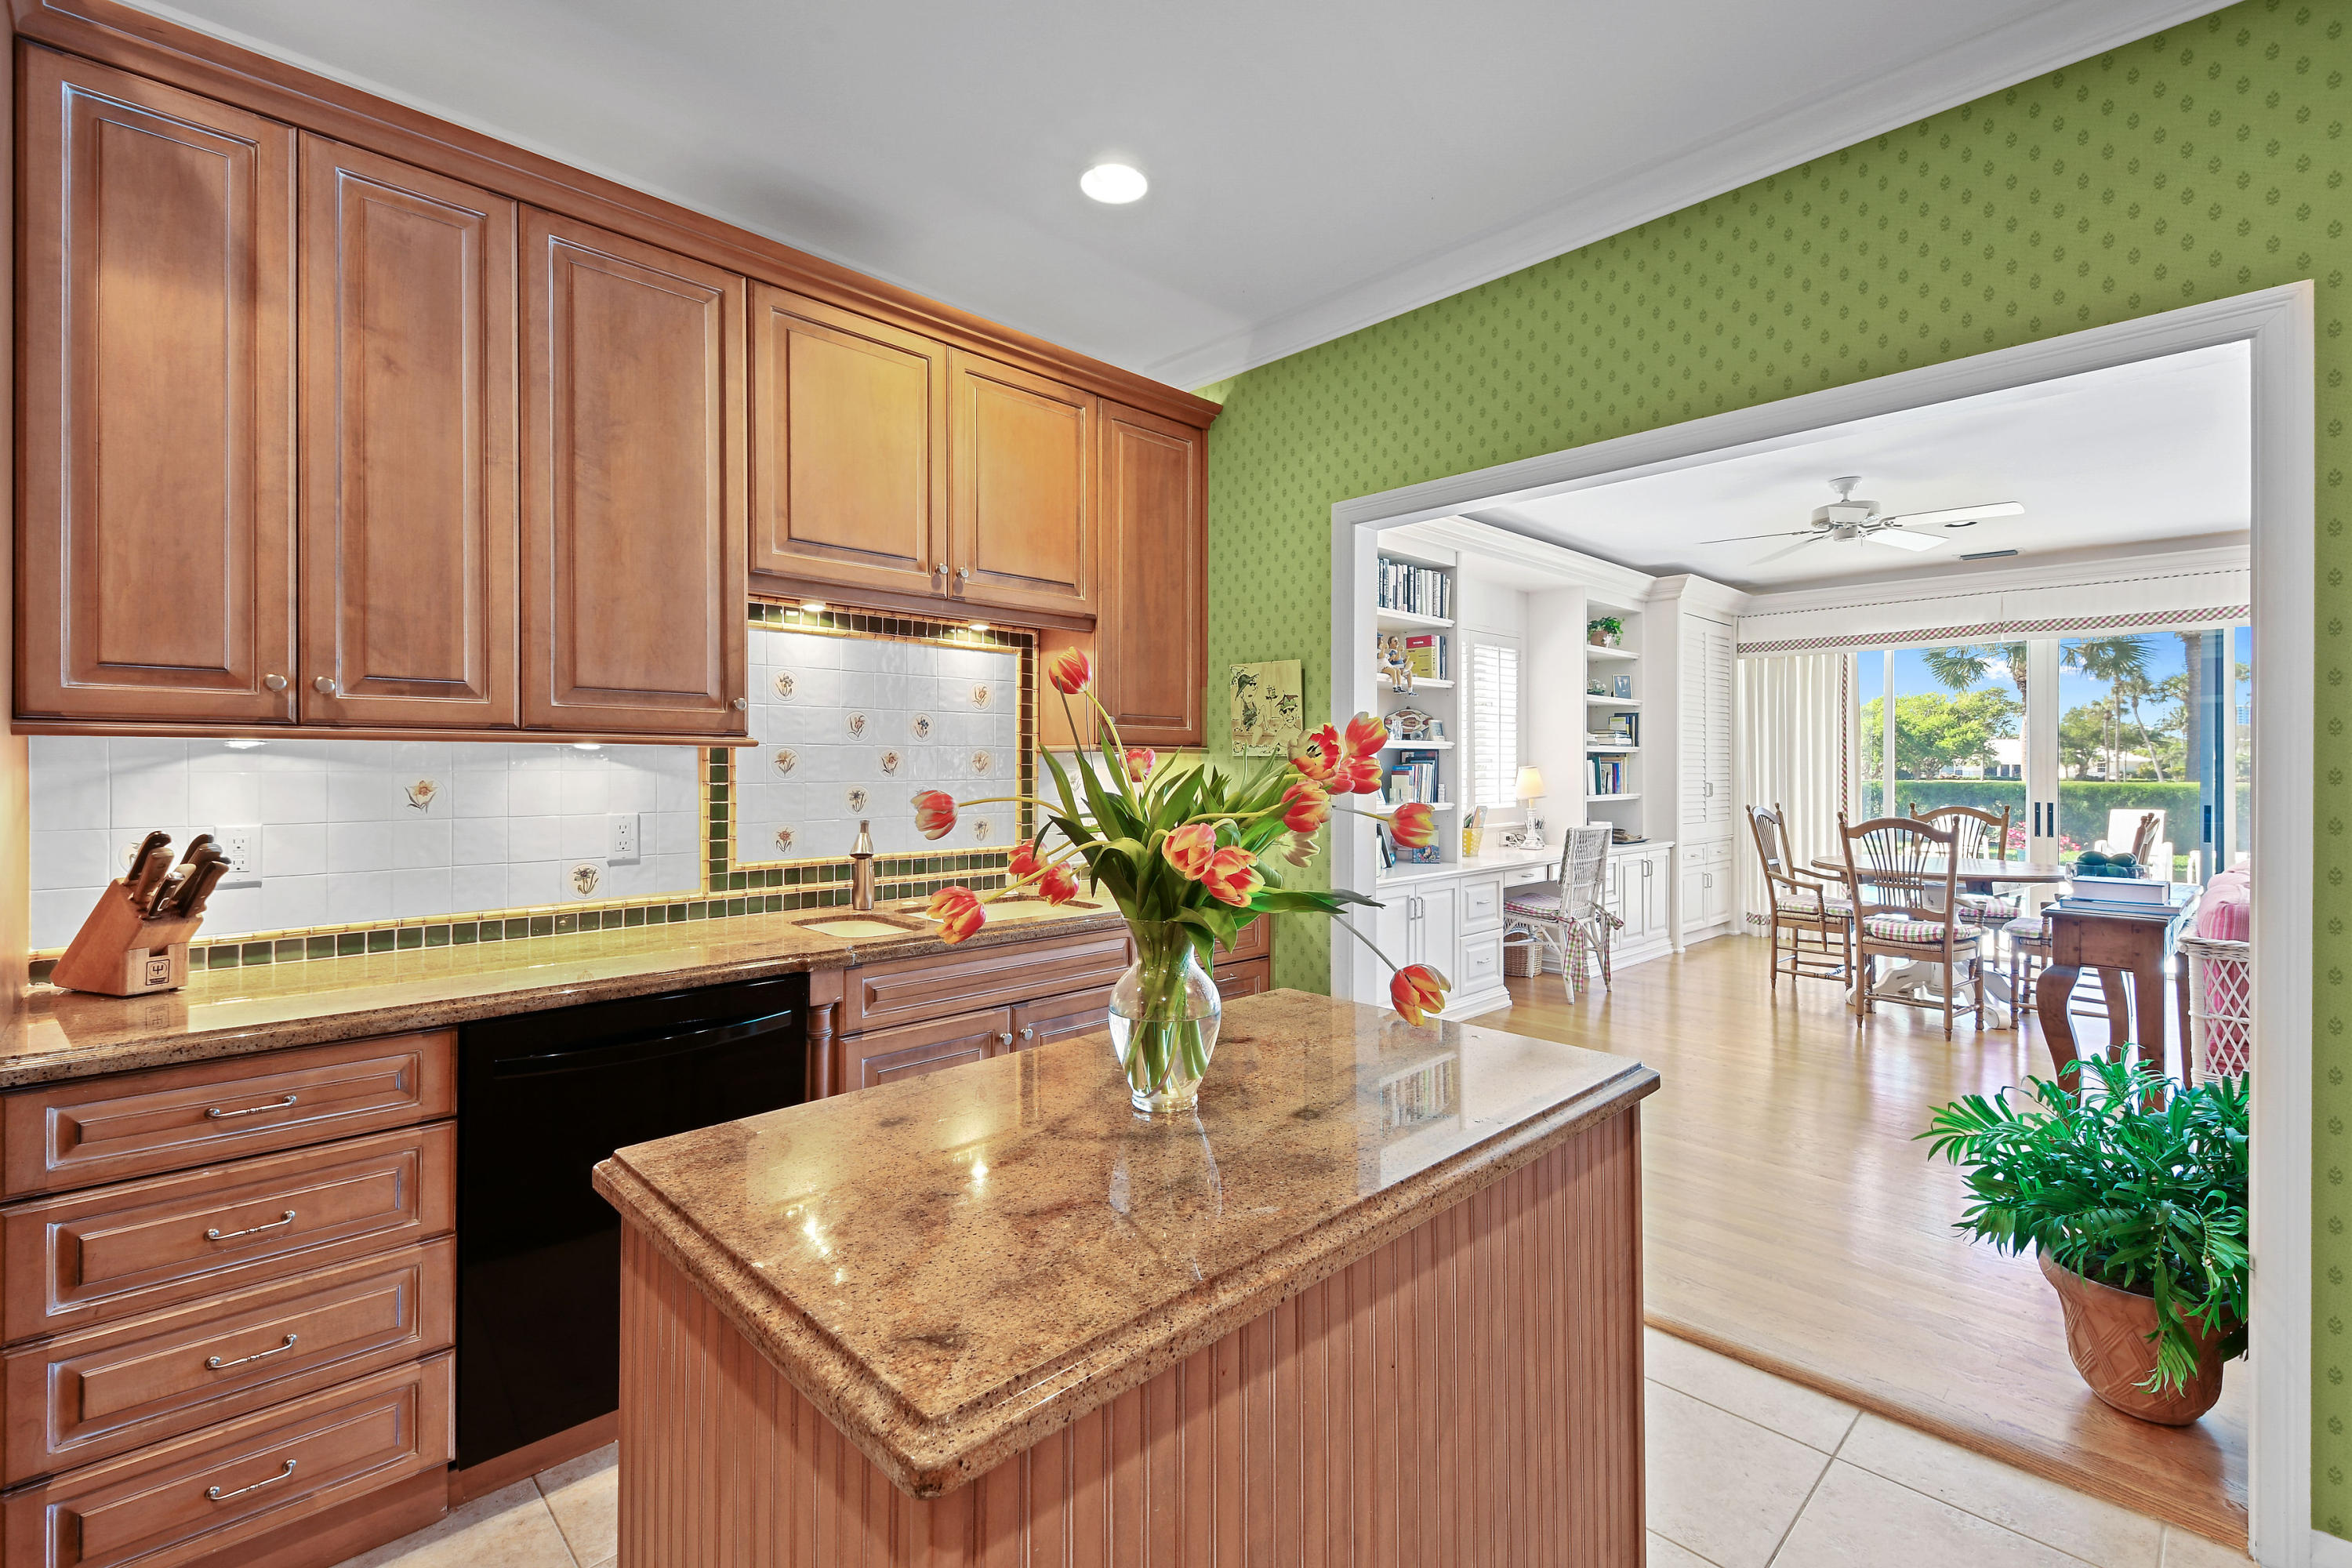 11427 Turtle Beach Road, North Palm Beach, Florida 33408, 3 Bedrooms Bedrooms, ,4 BathroomsBathrooms,A,Single family,Turtle Beach,RX-10500902